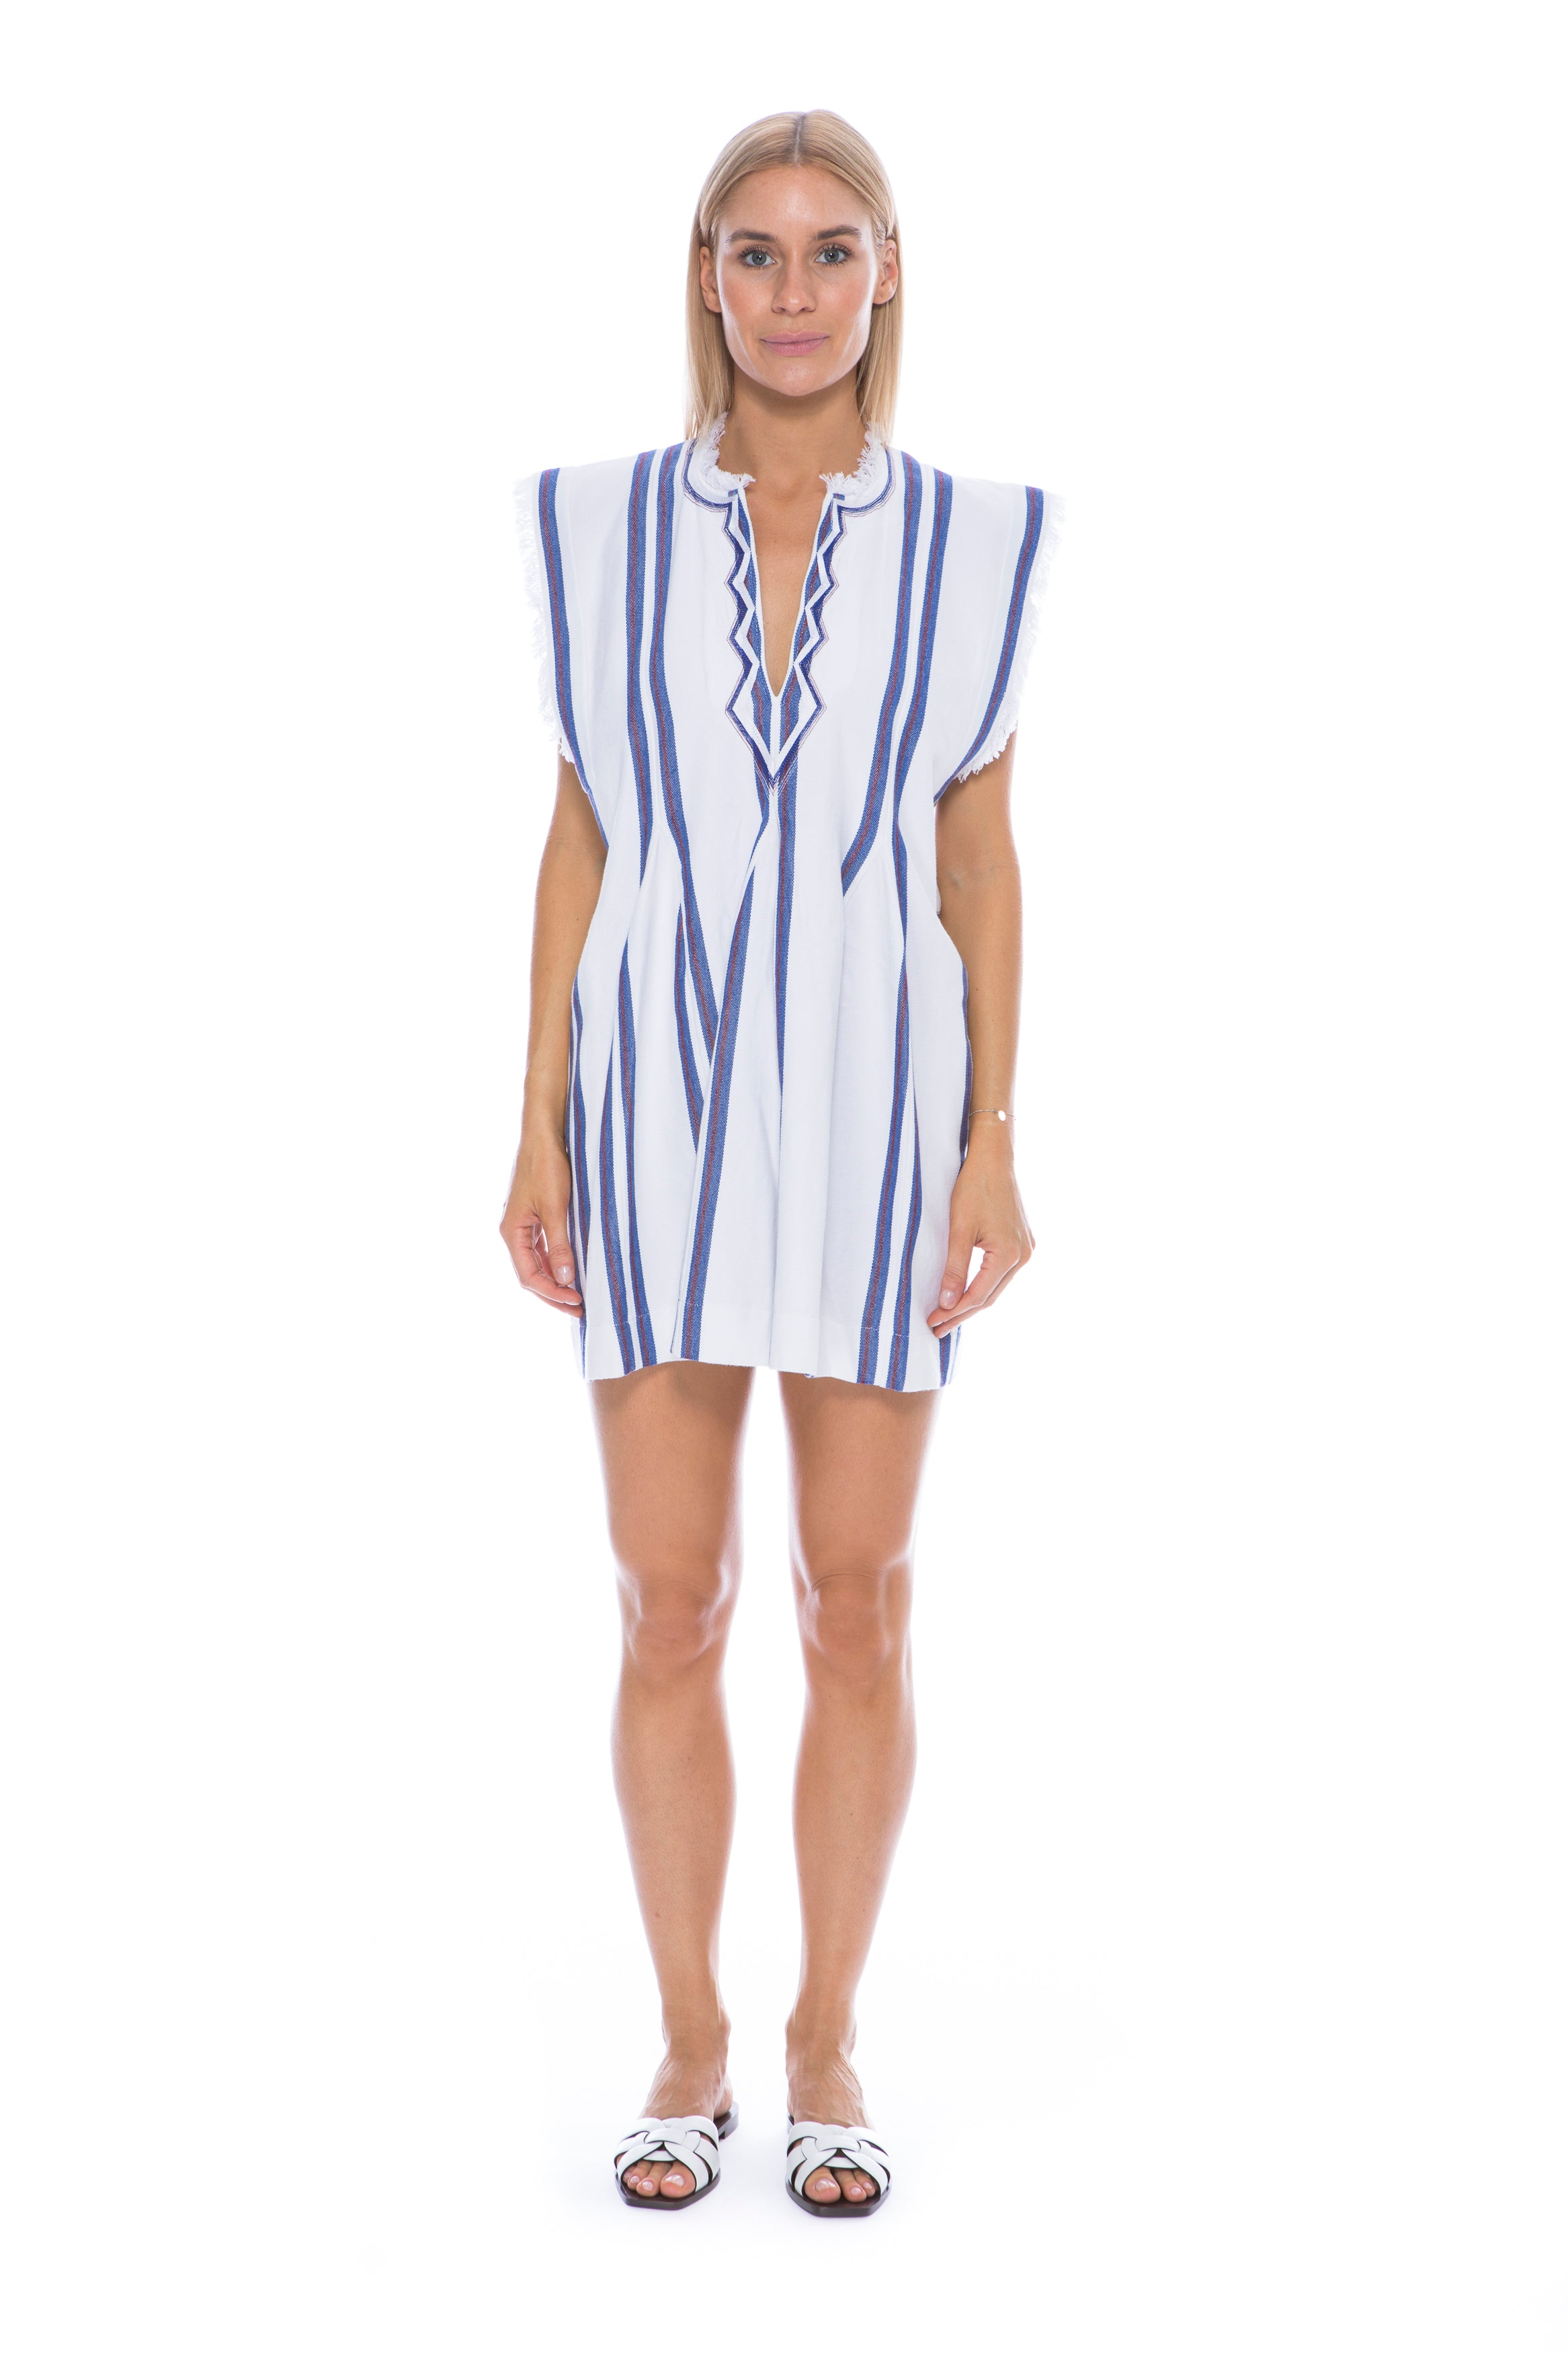 ETOILE DENIZE DRESS WHITE & BLUE